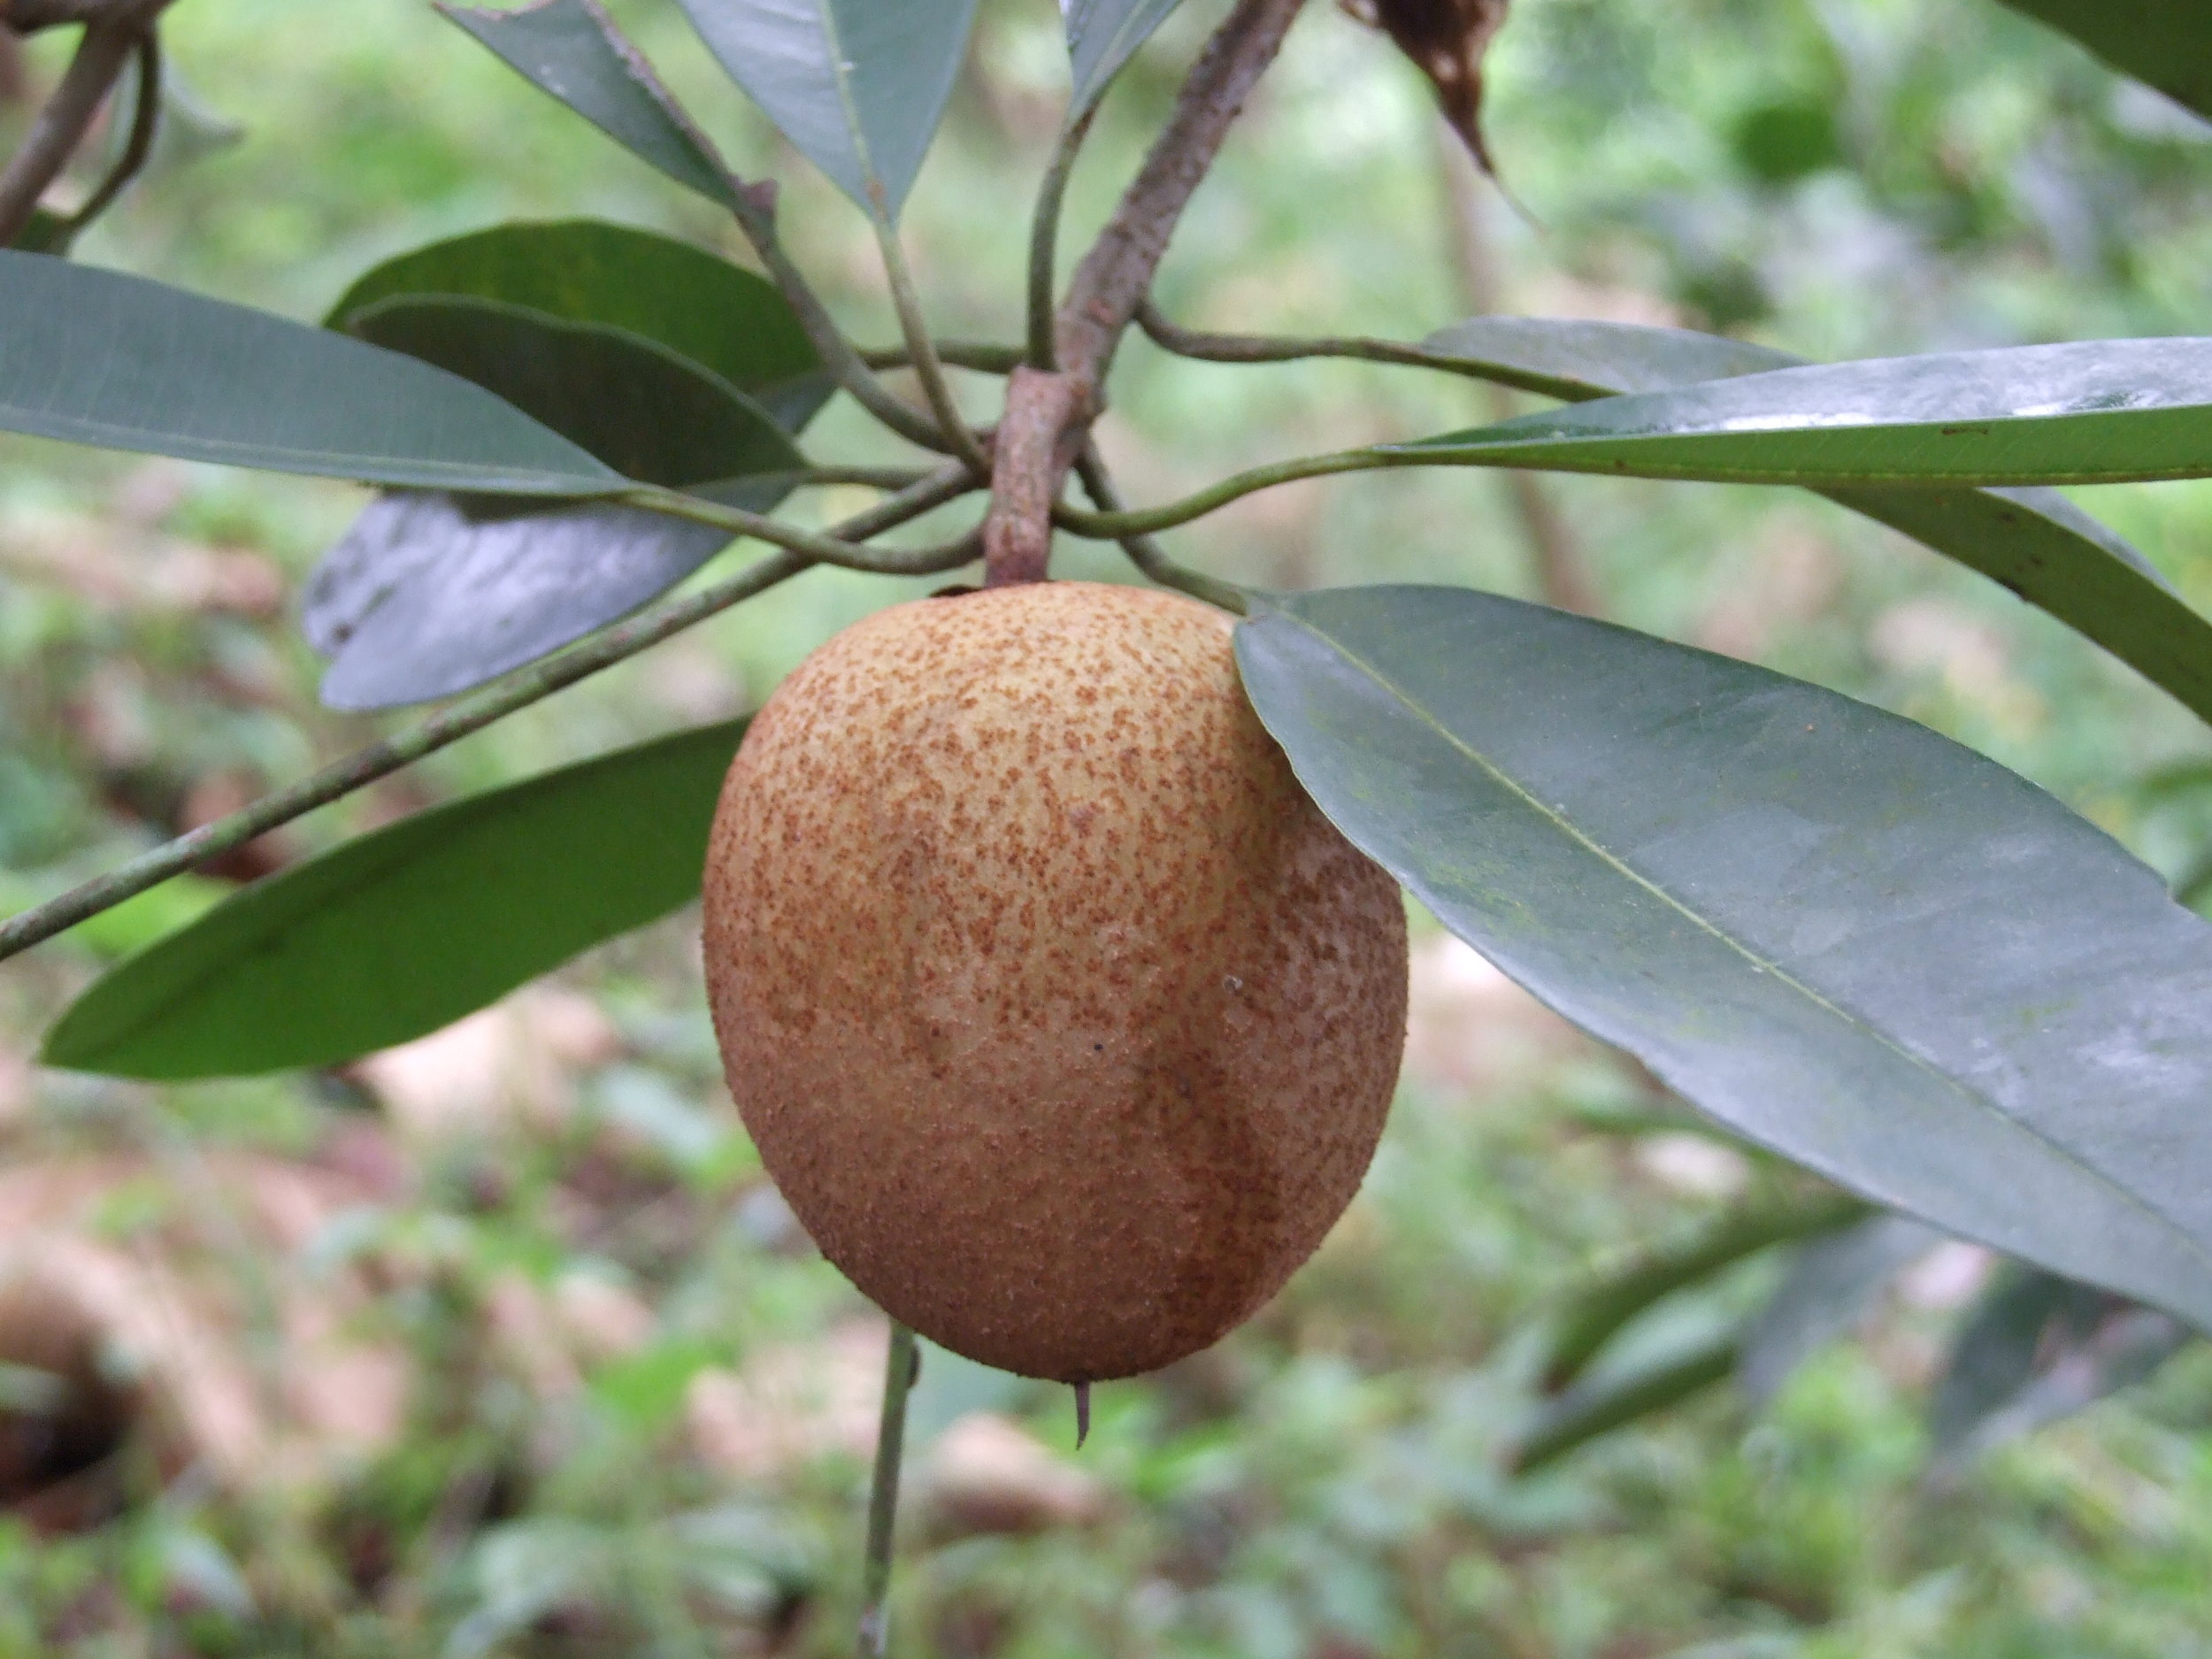 indigenous to mexico and central america sapodilla or chico sapote is a traditional food plant of the mayan and aztec cultures and the source of chewing